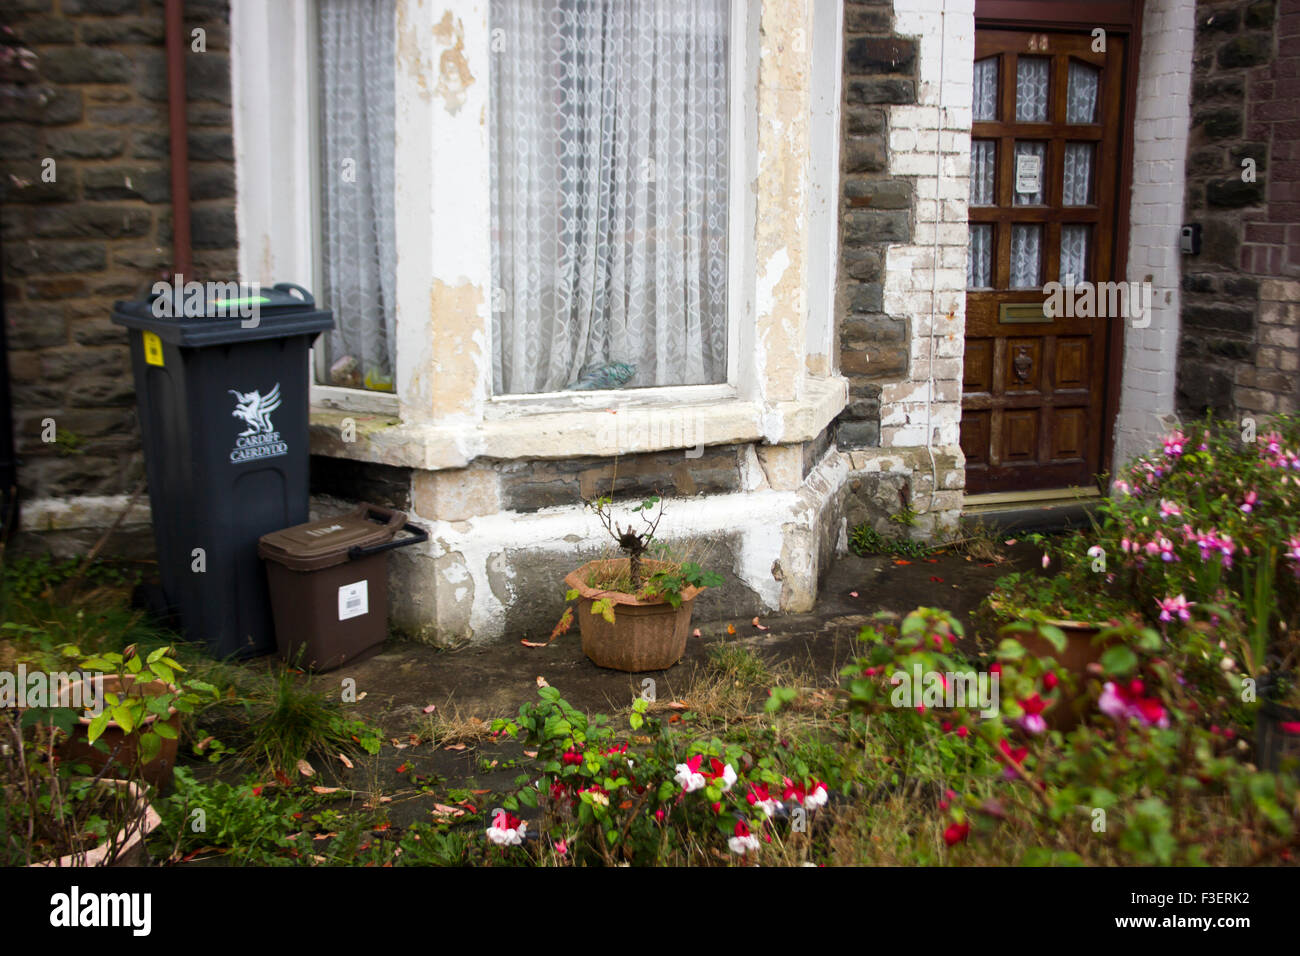 Old house with a messy garden in Cardiff - Stock Image